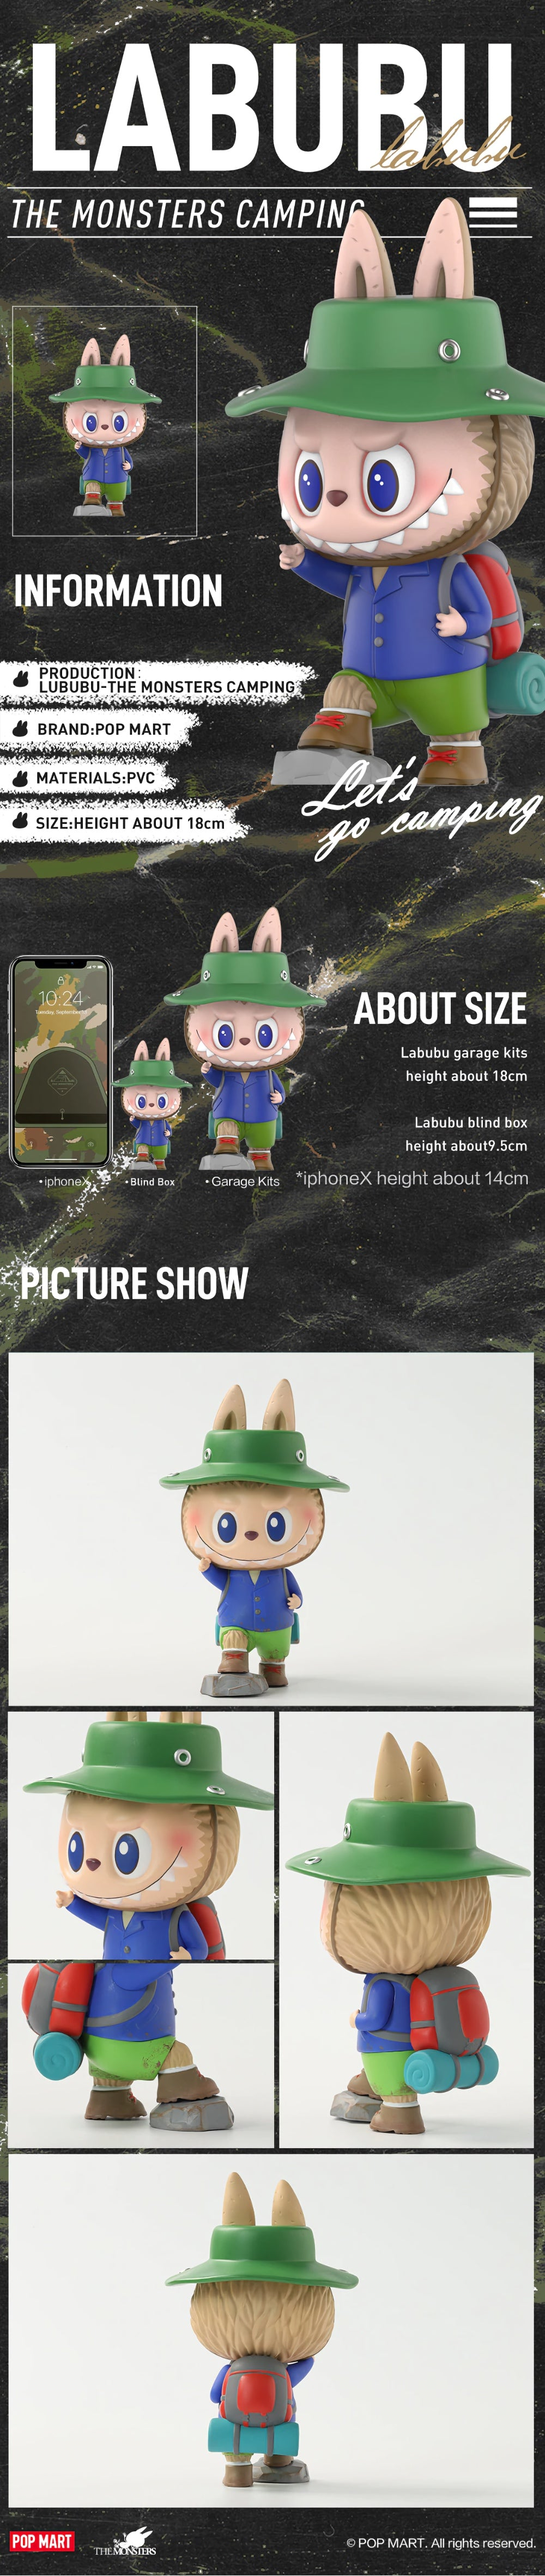 POP MART X Labubu the Monsters Camping Collectible Figurine